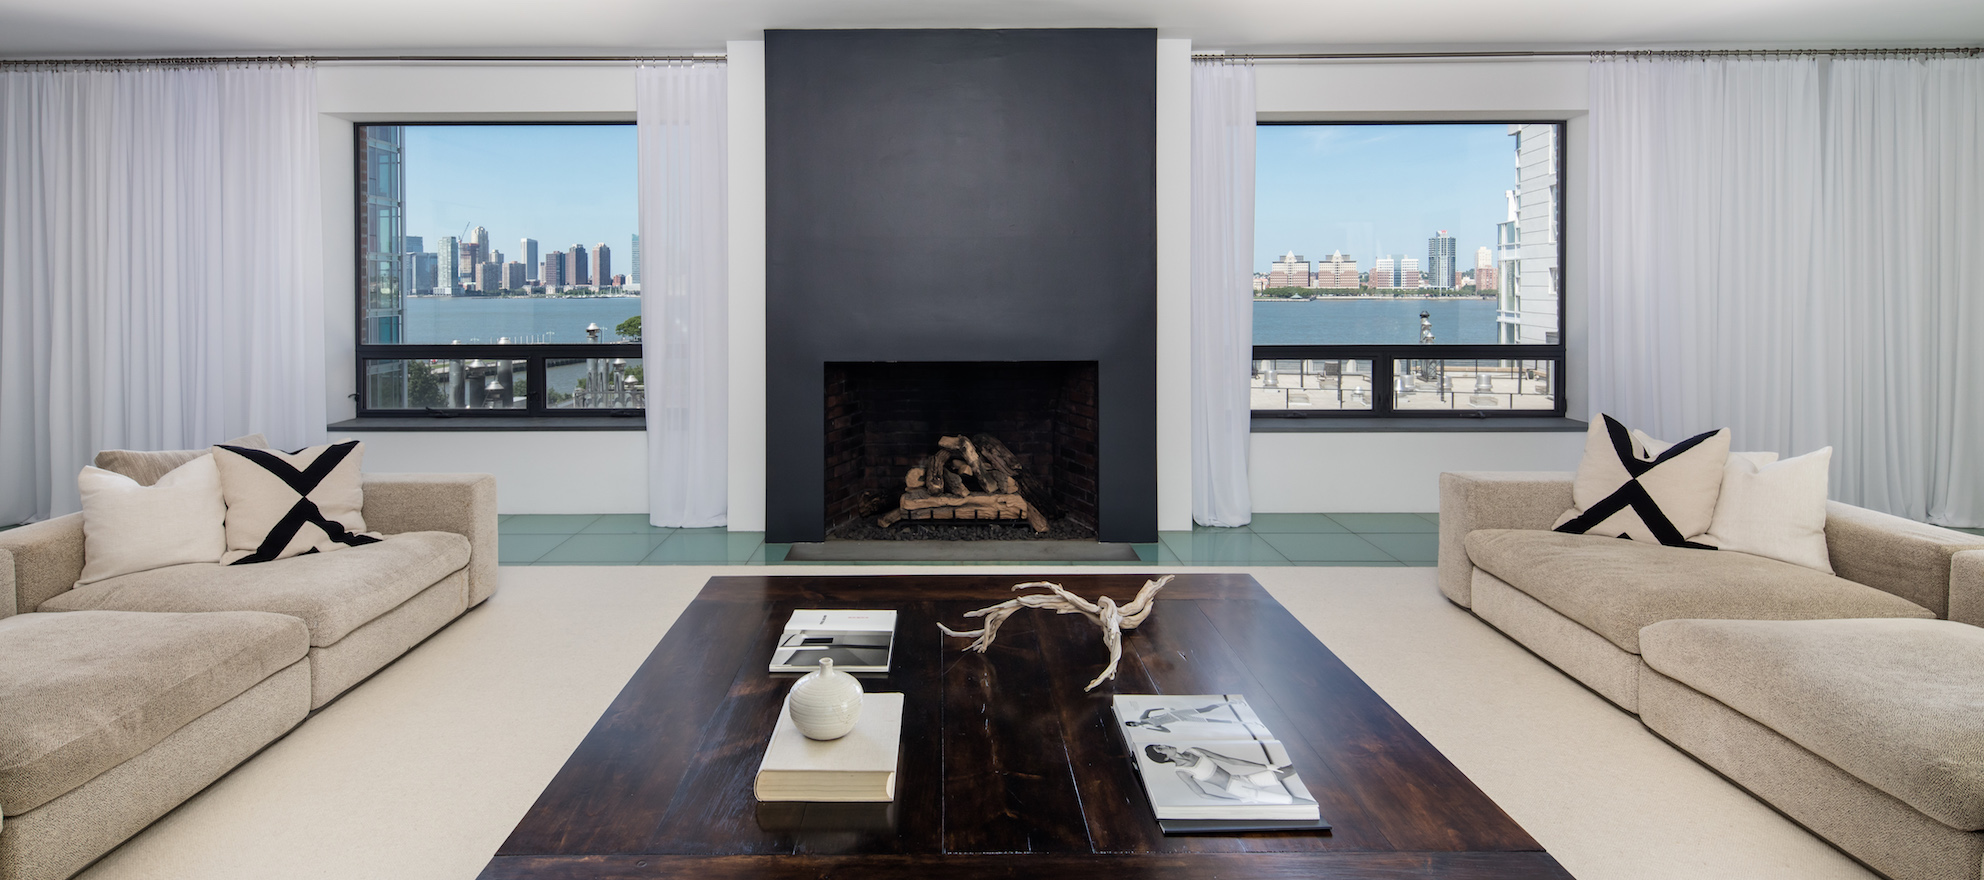 Luxury listing of the day: Immaculate 5-bedroom Manhattan penthouse